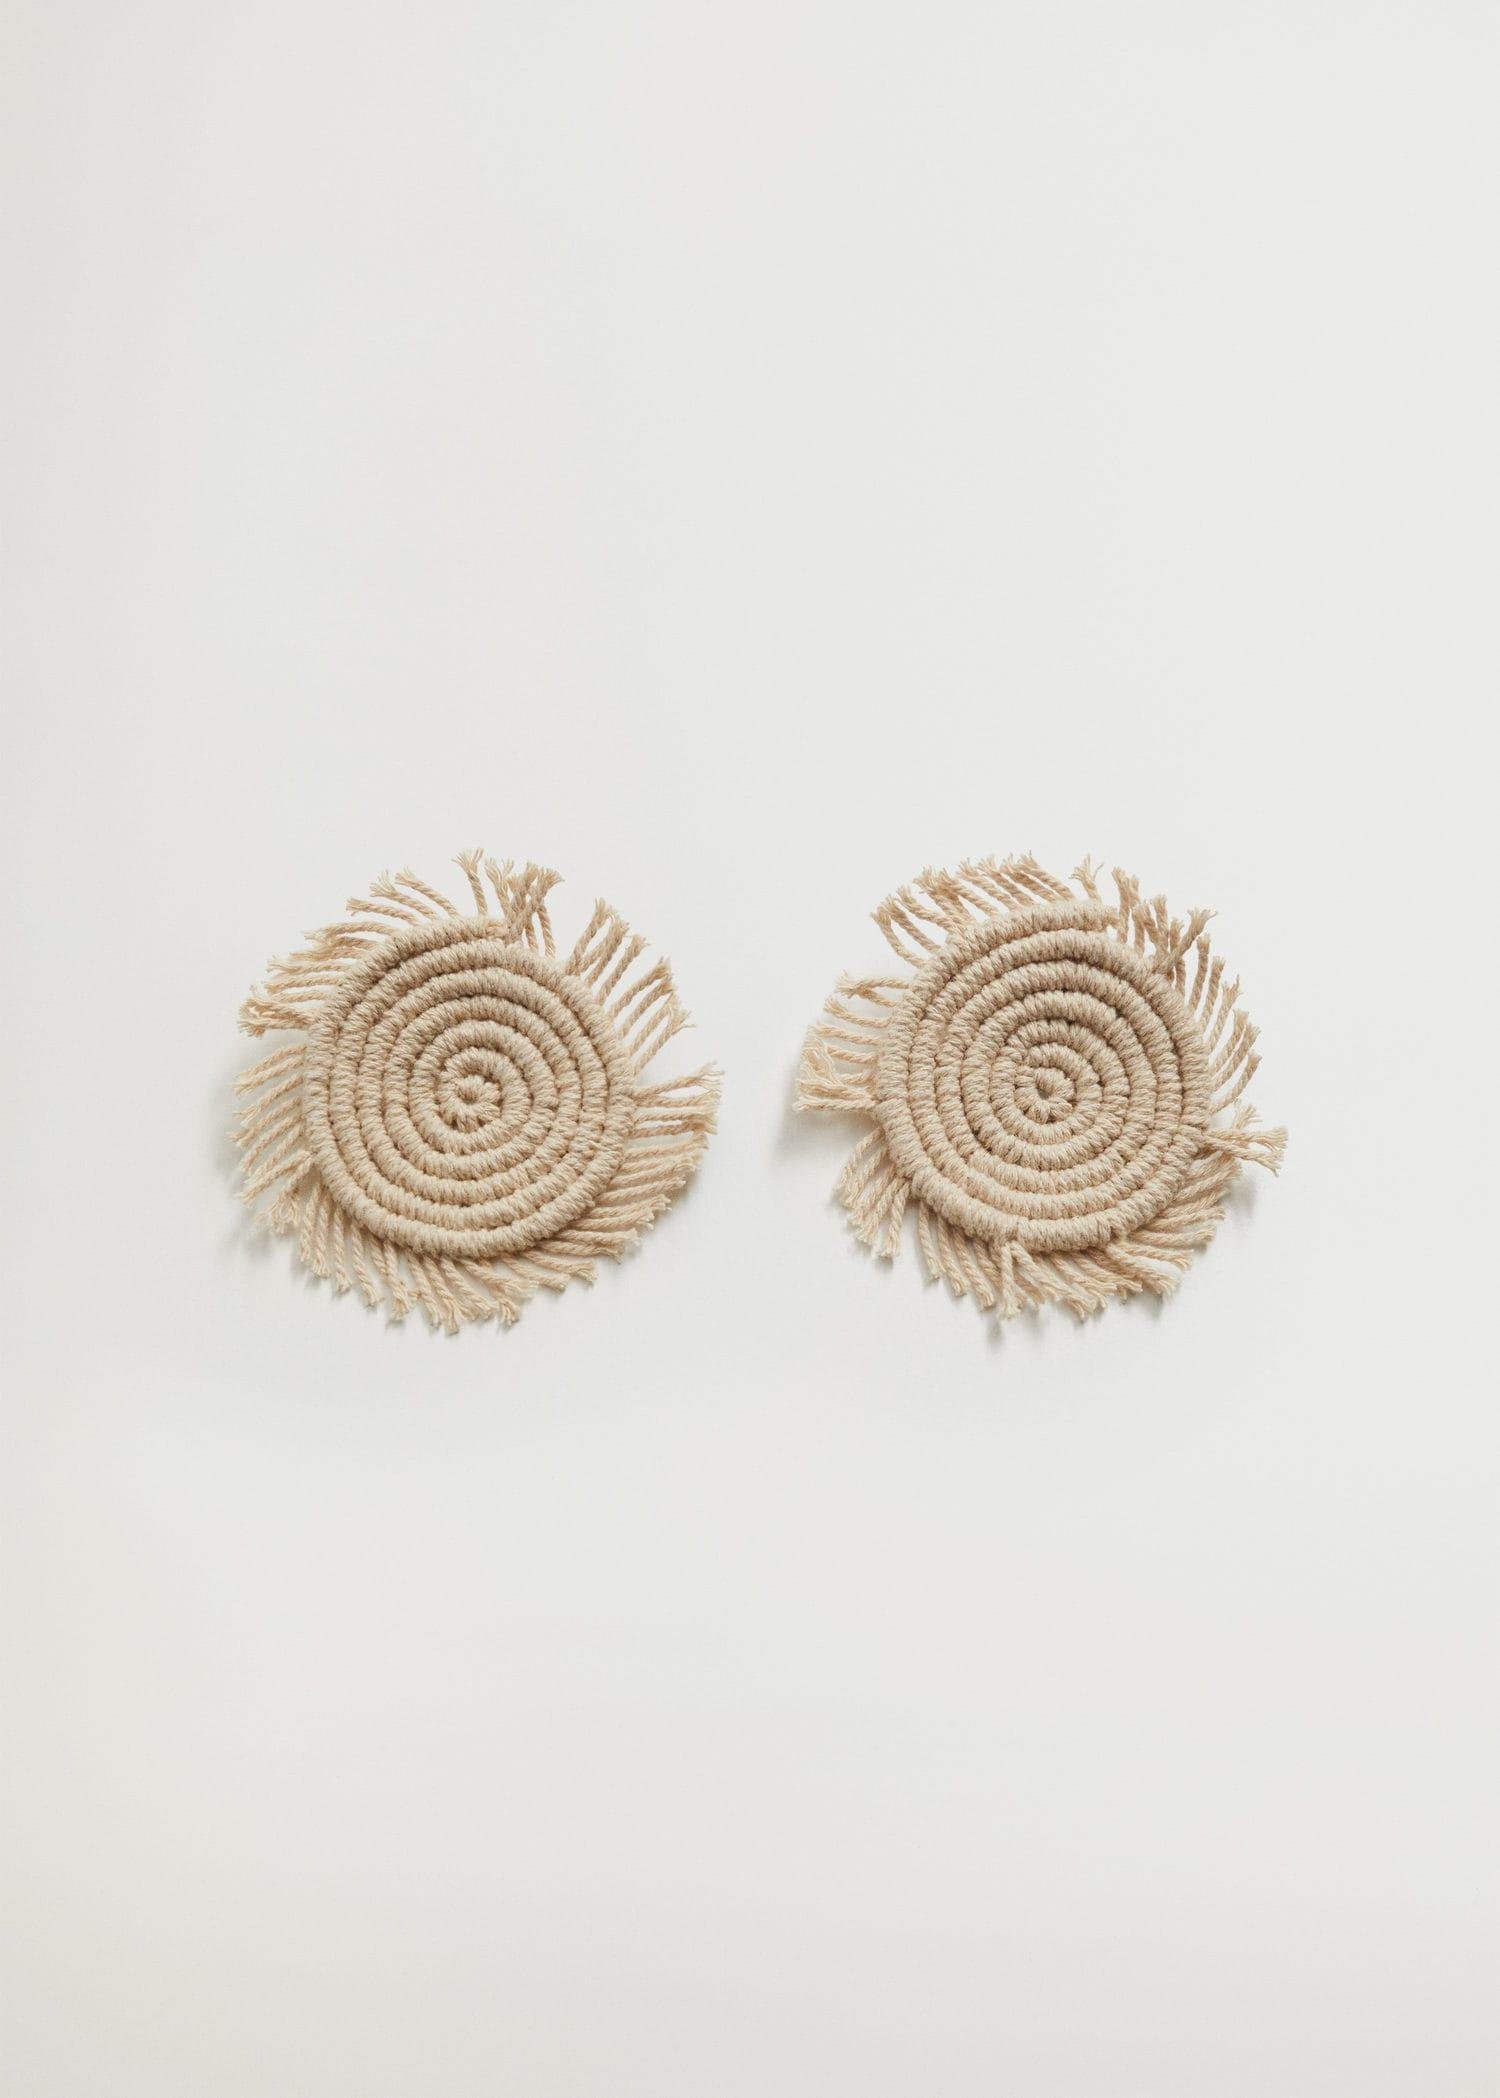 Circular earrings with fringes